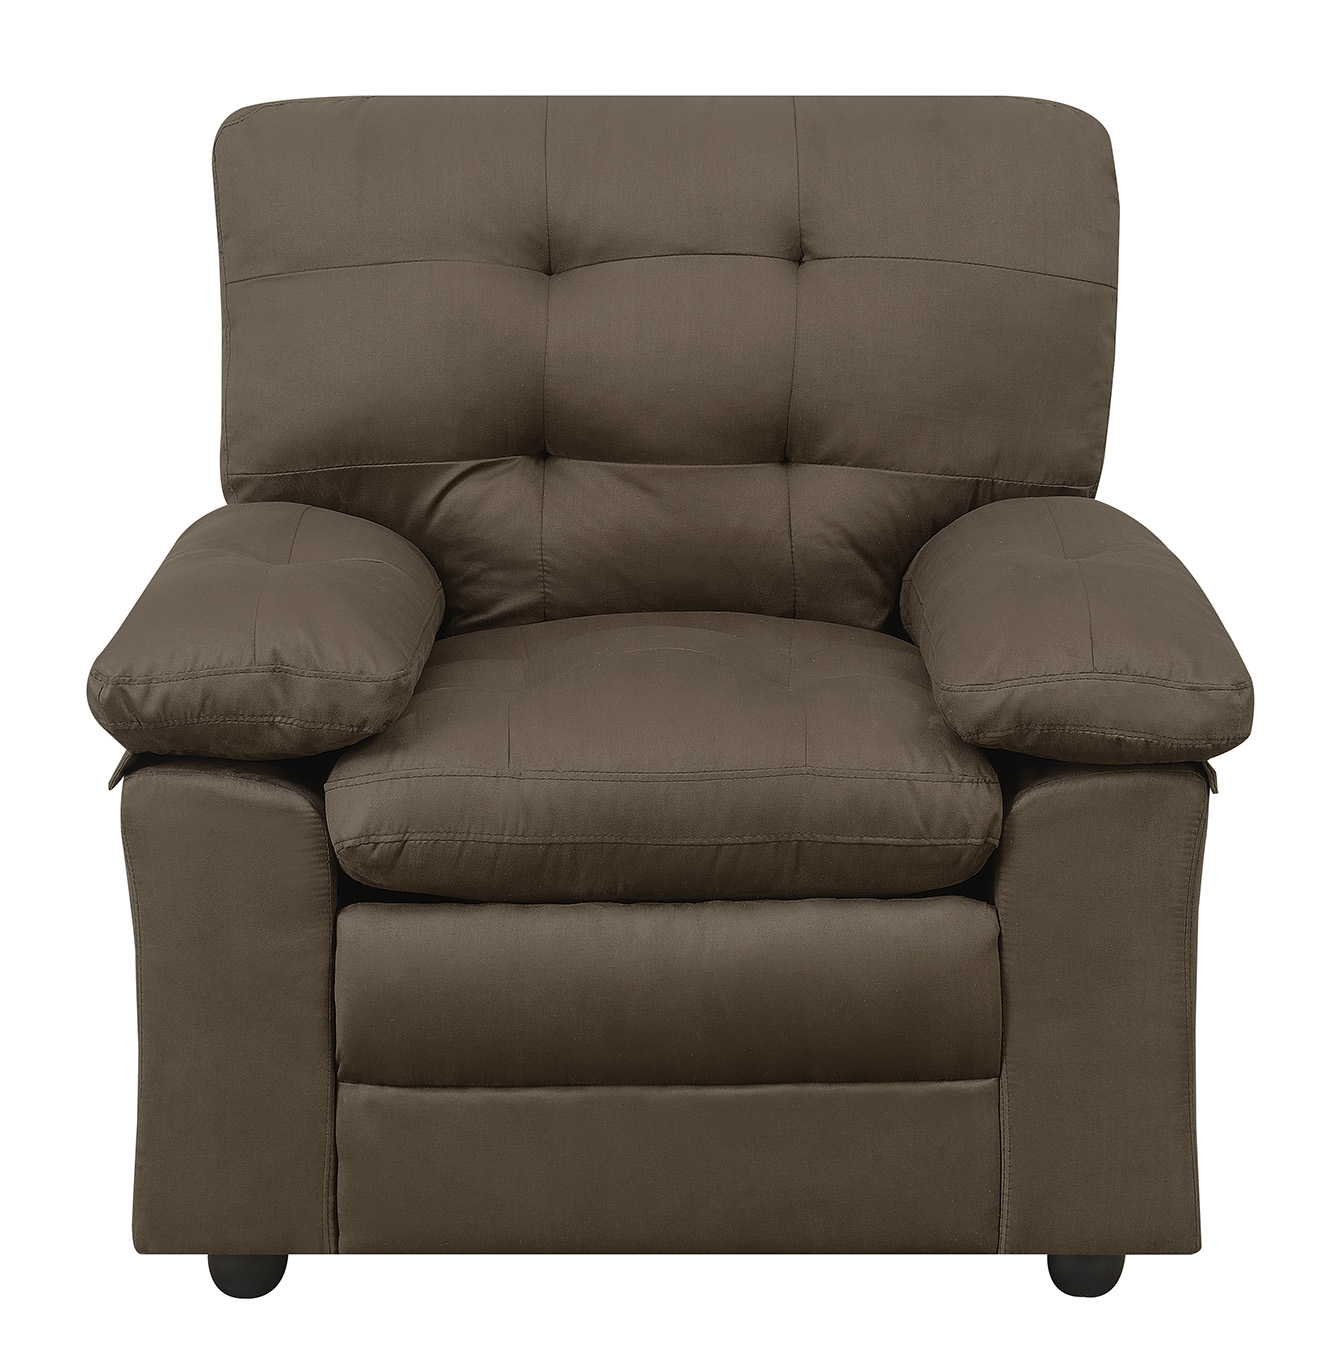 Mainstays Buchannan Chair Dark Chocolate Microfiber